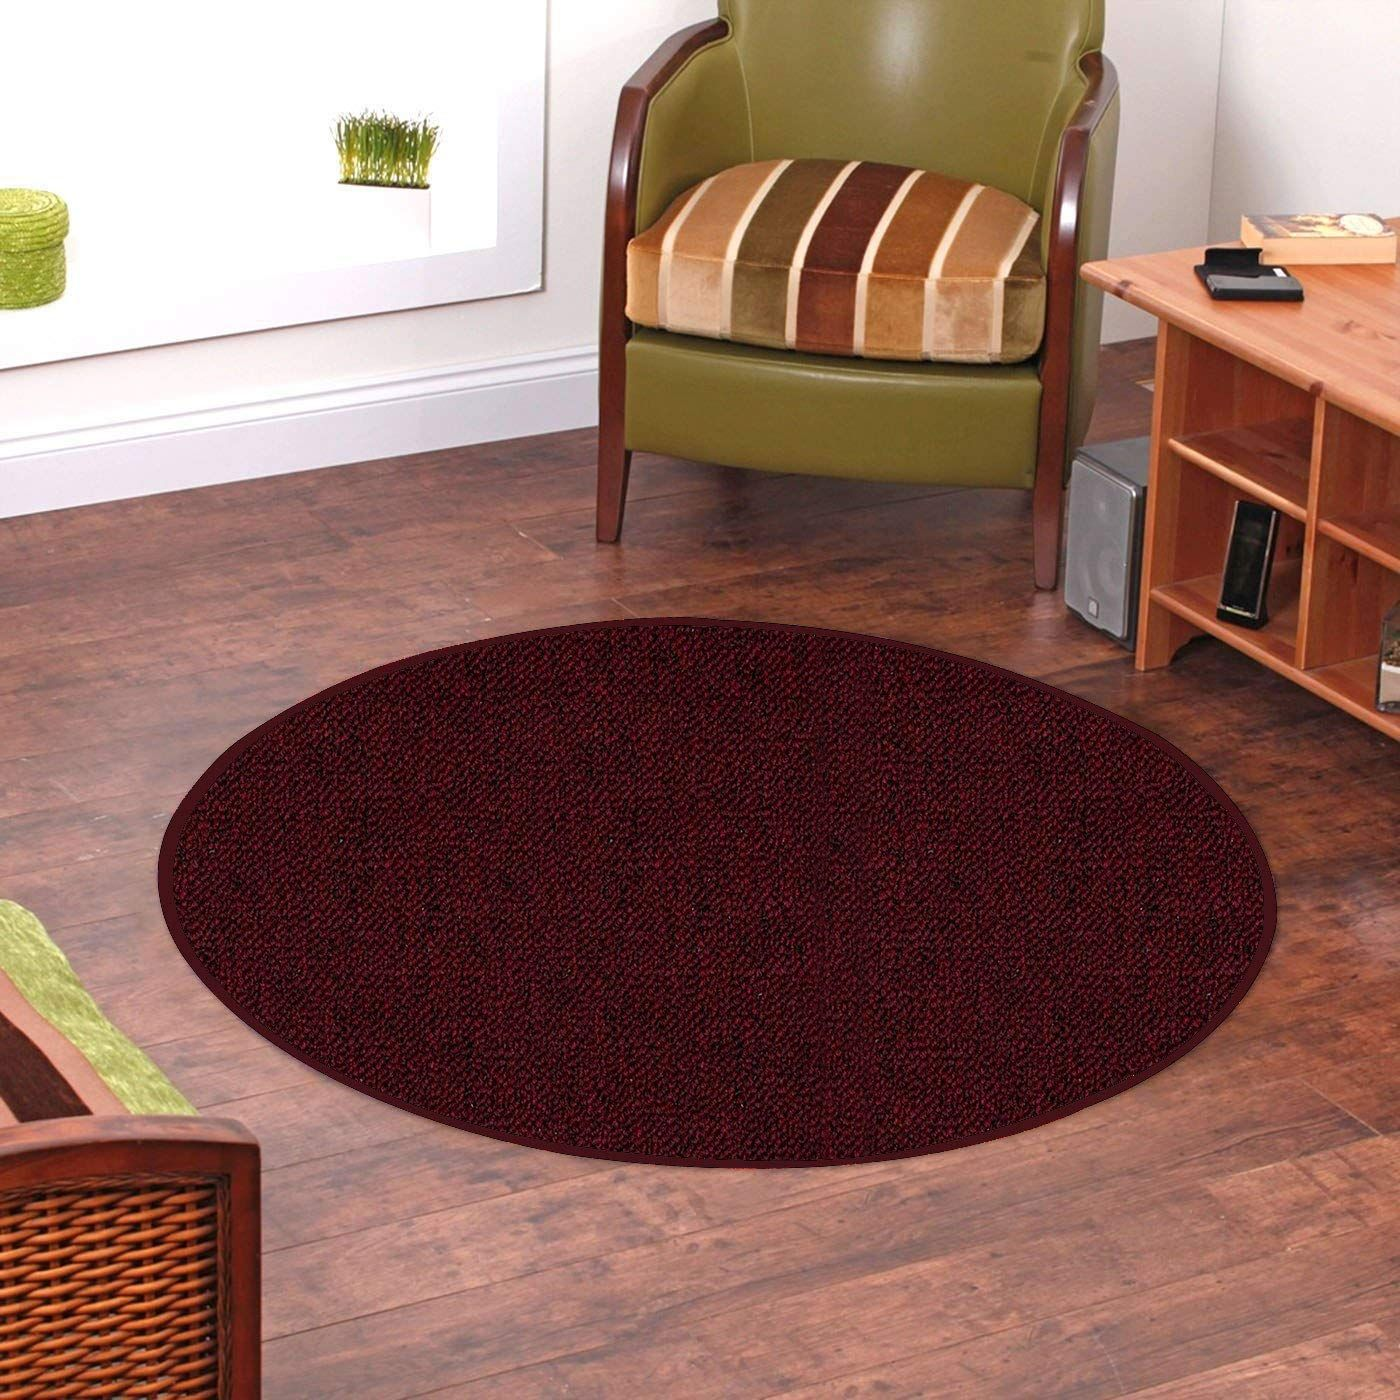 Commercial Rugs Maple Home Acromatic Collection Indoor Outdoor Commercial Rugs